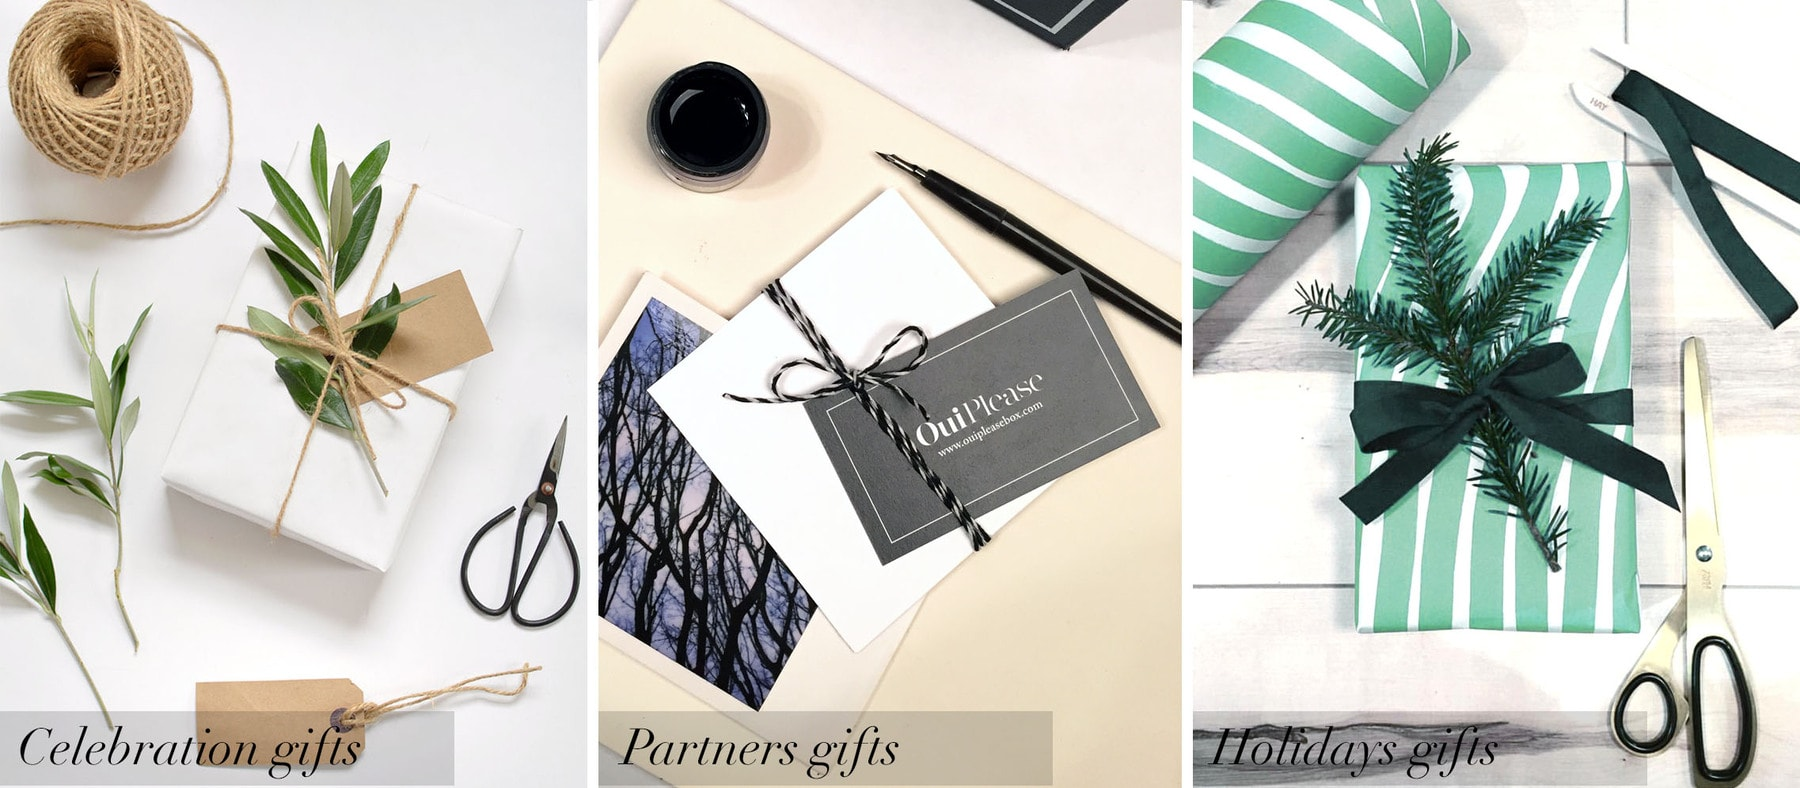 OuiPlease Privee celebration gifts holiday gifts corporate gifts